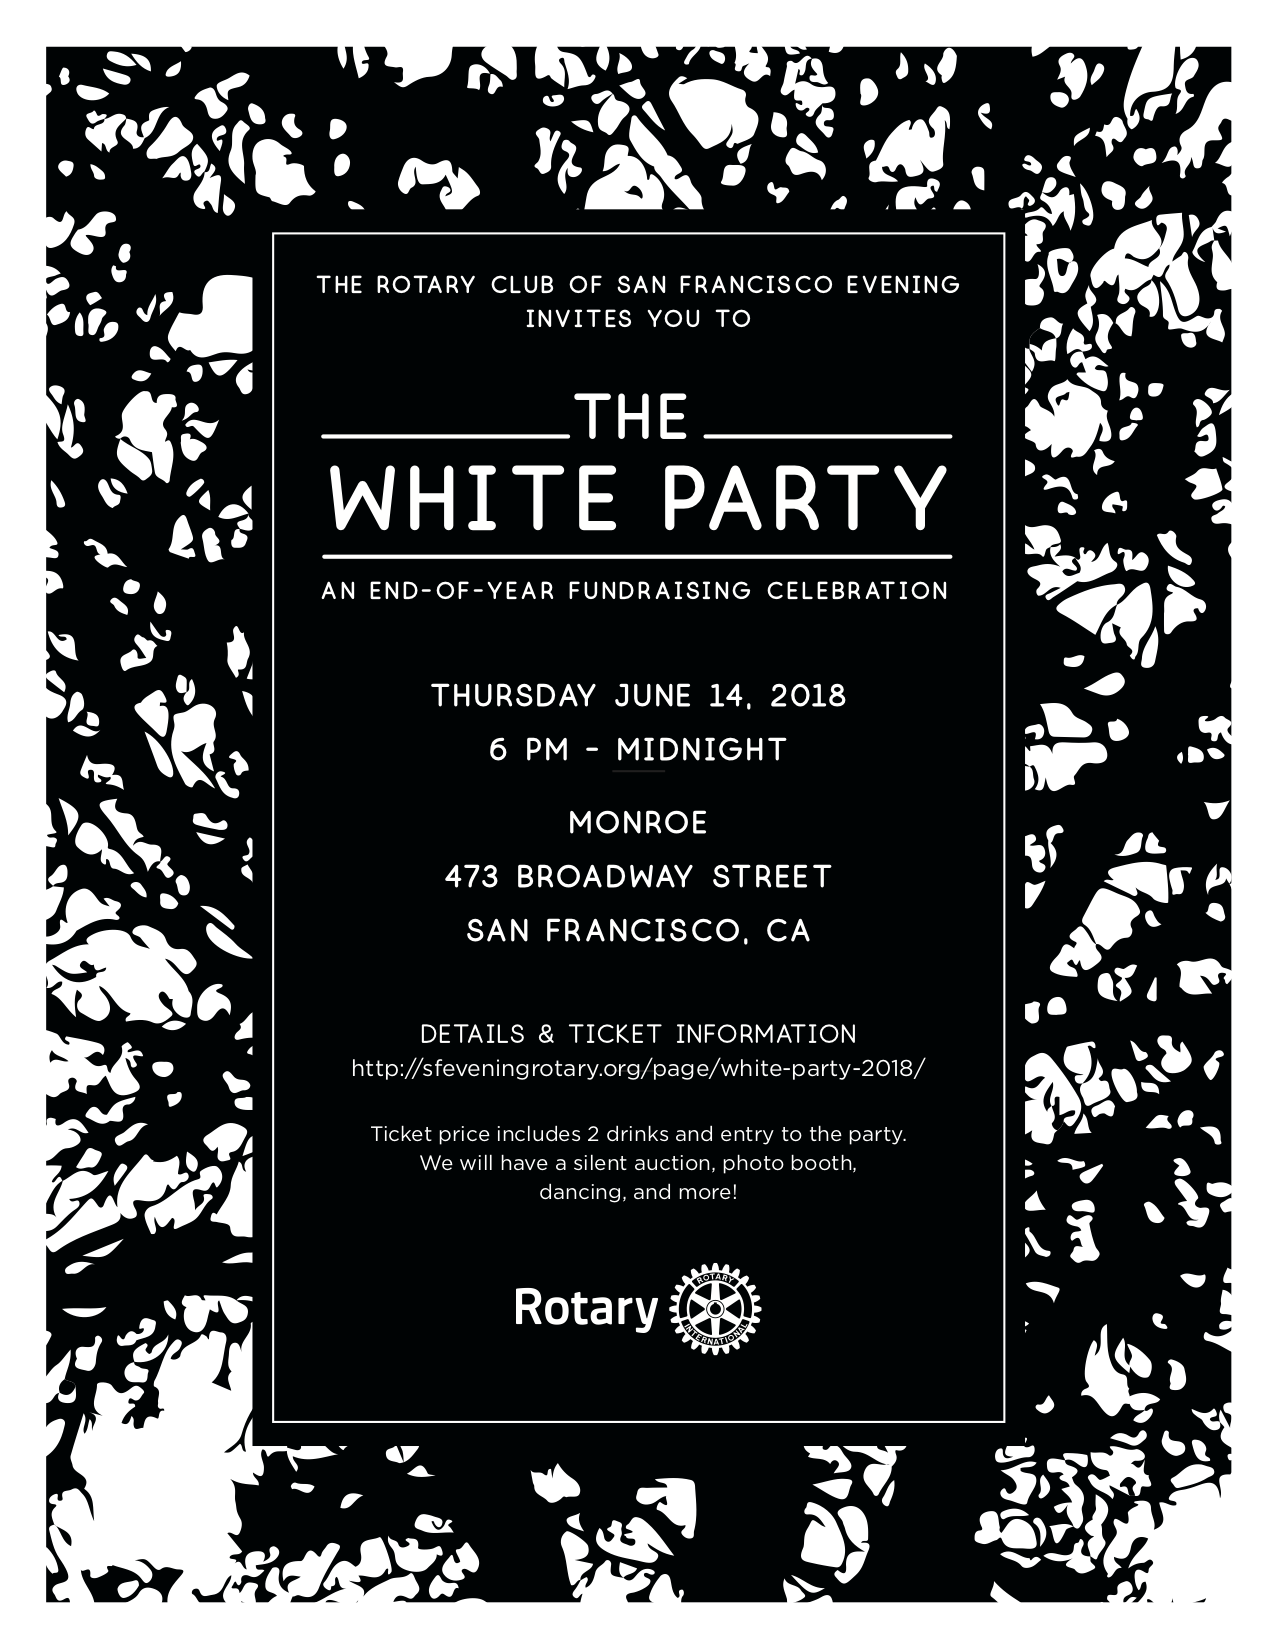 White Party 2018 | Rotary Club of San Francisco Evening